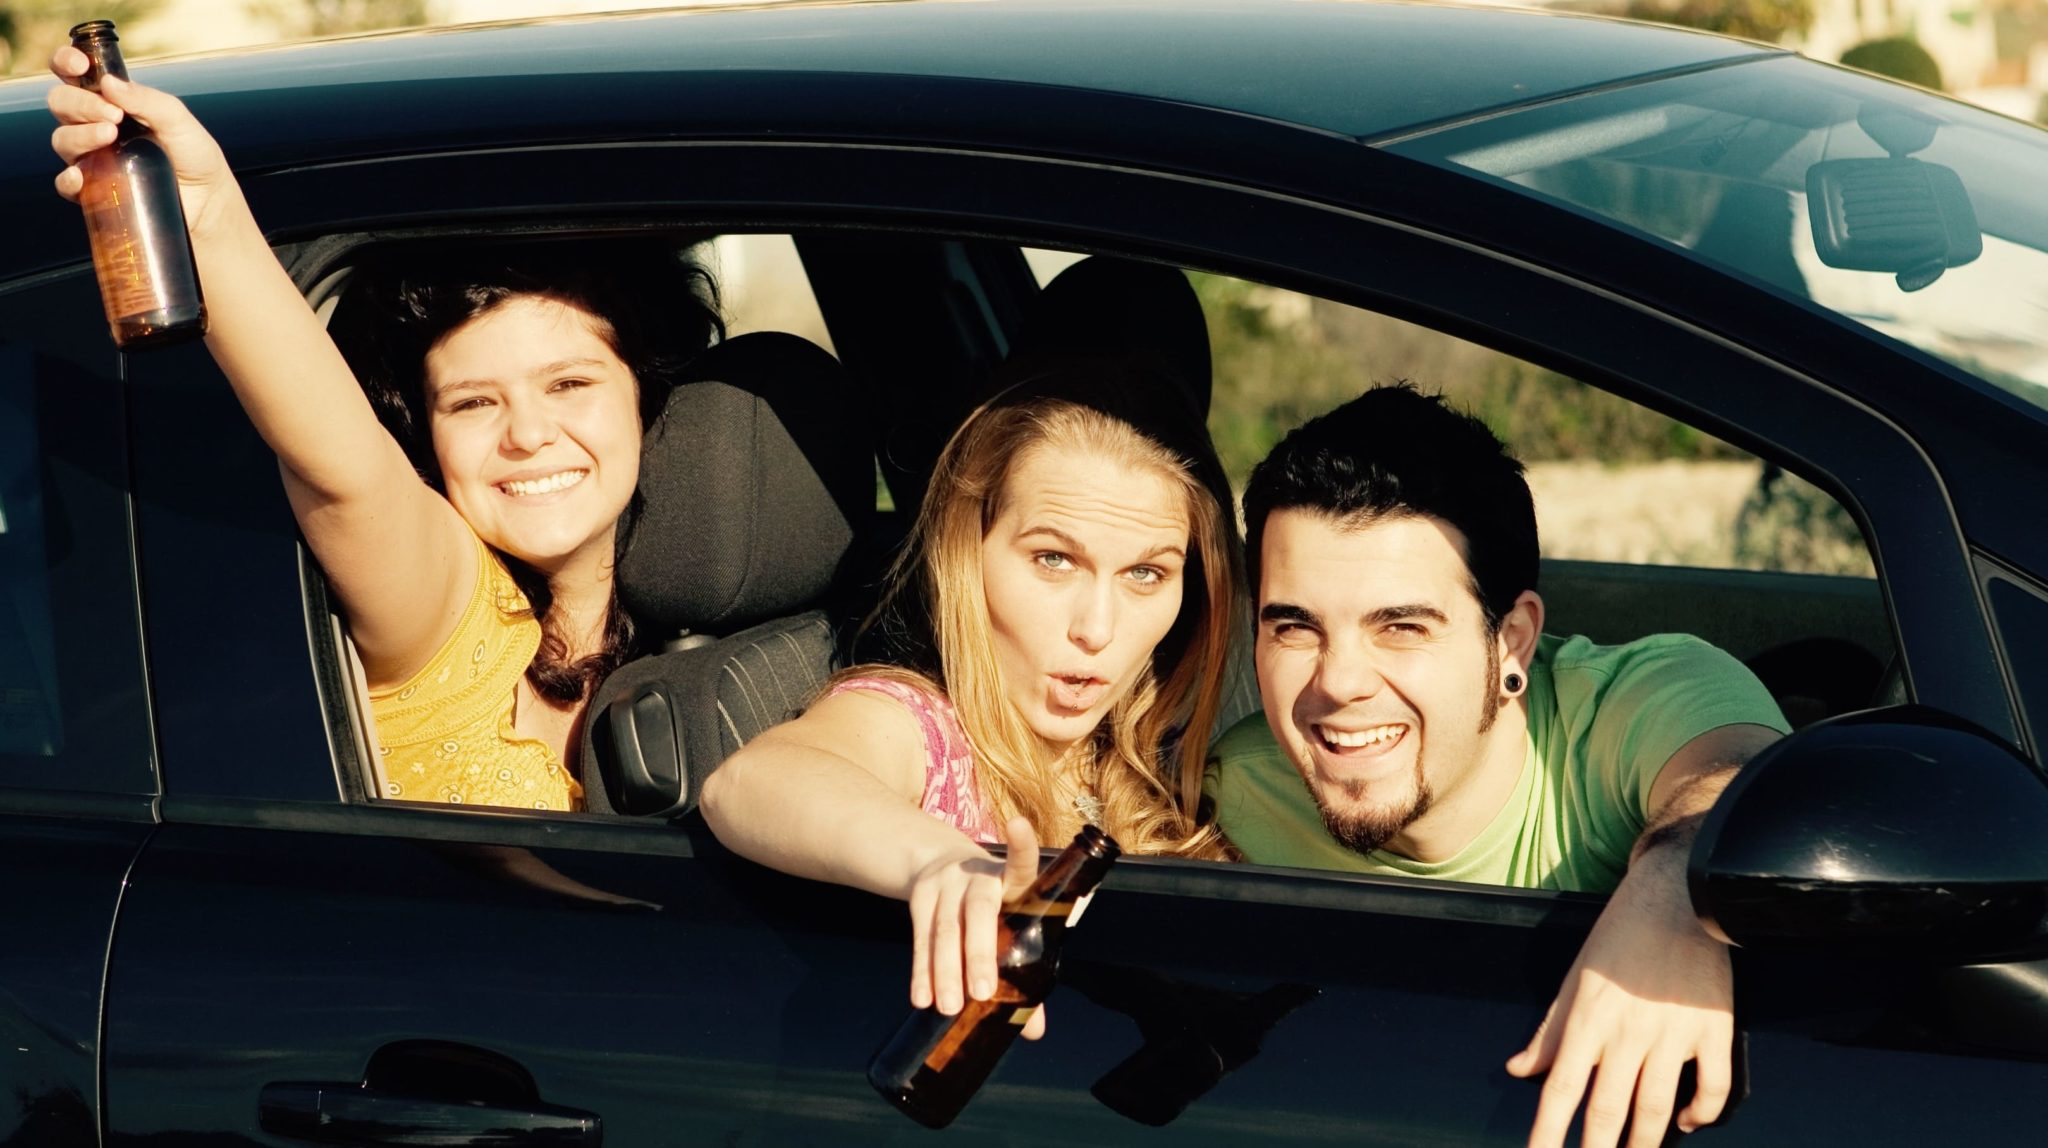 DUI punishment underage drinking penalties driving while drinking and open alcoholic container houston dui lawyer